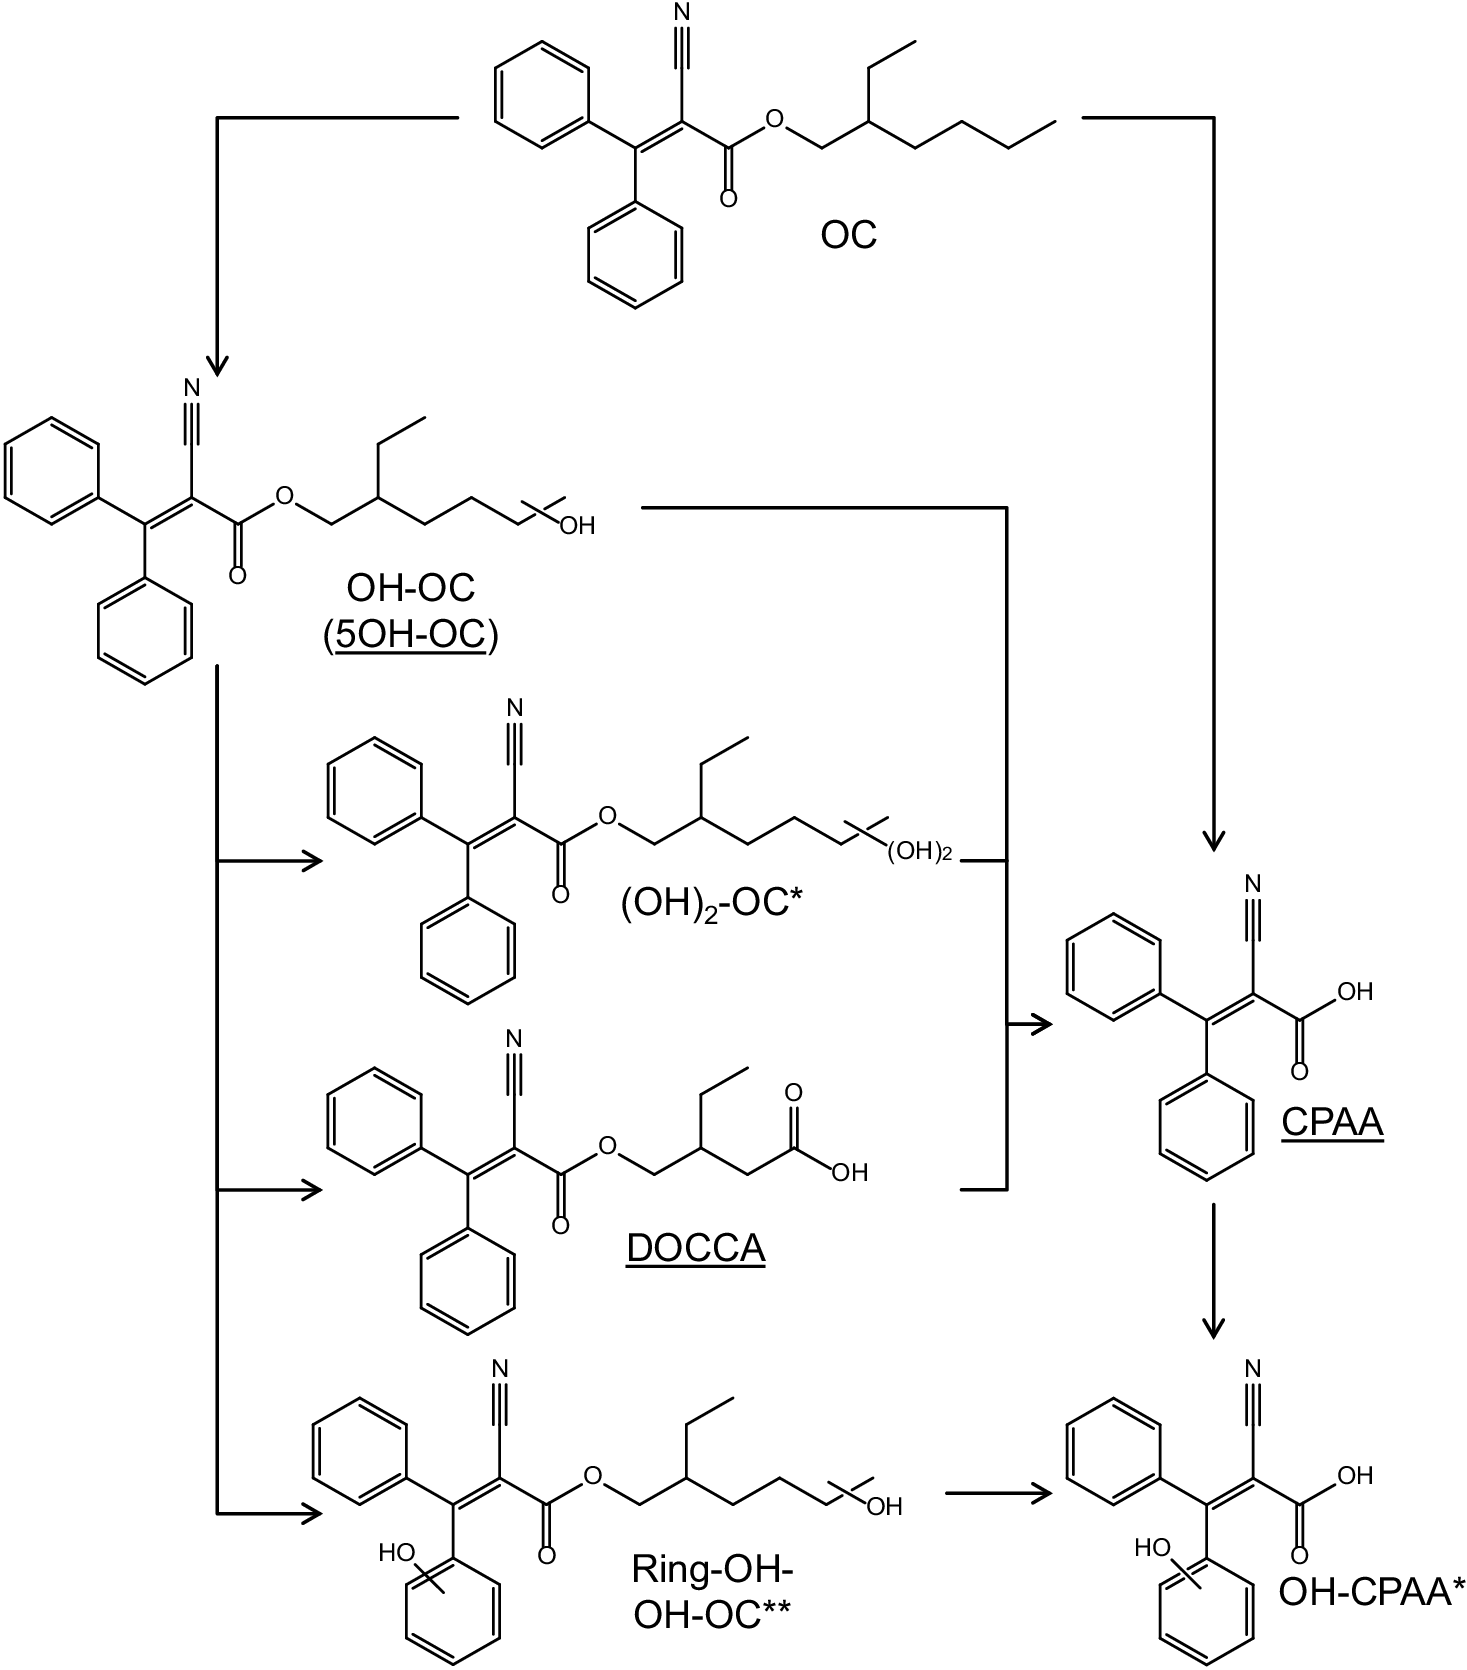 Urinary metabolites of the UV filter octocrylene in humans